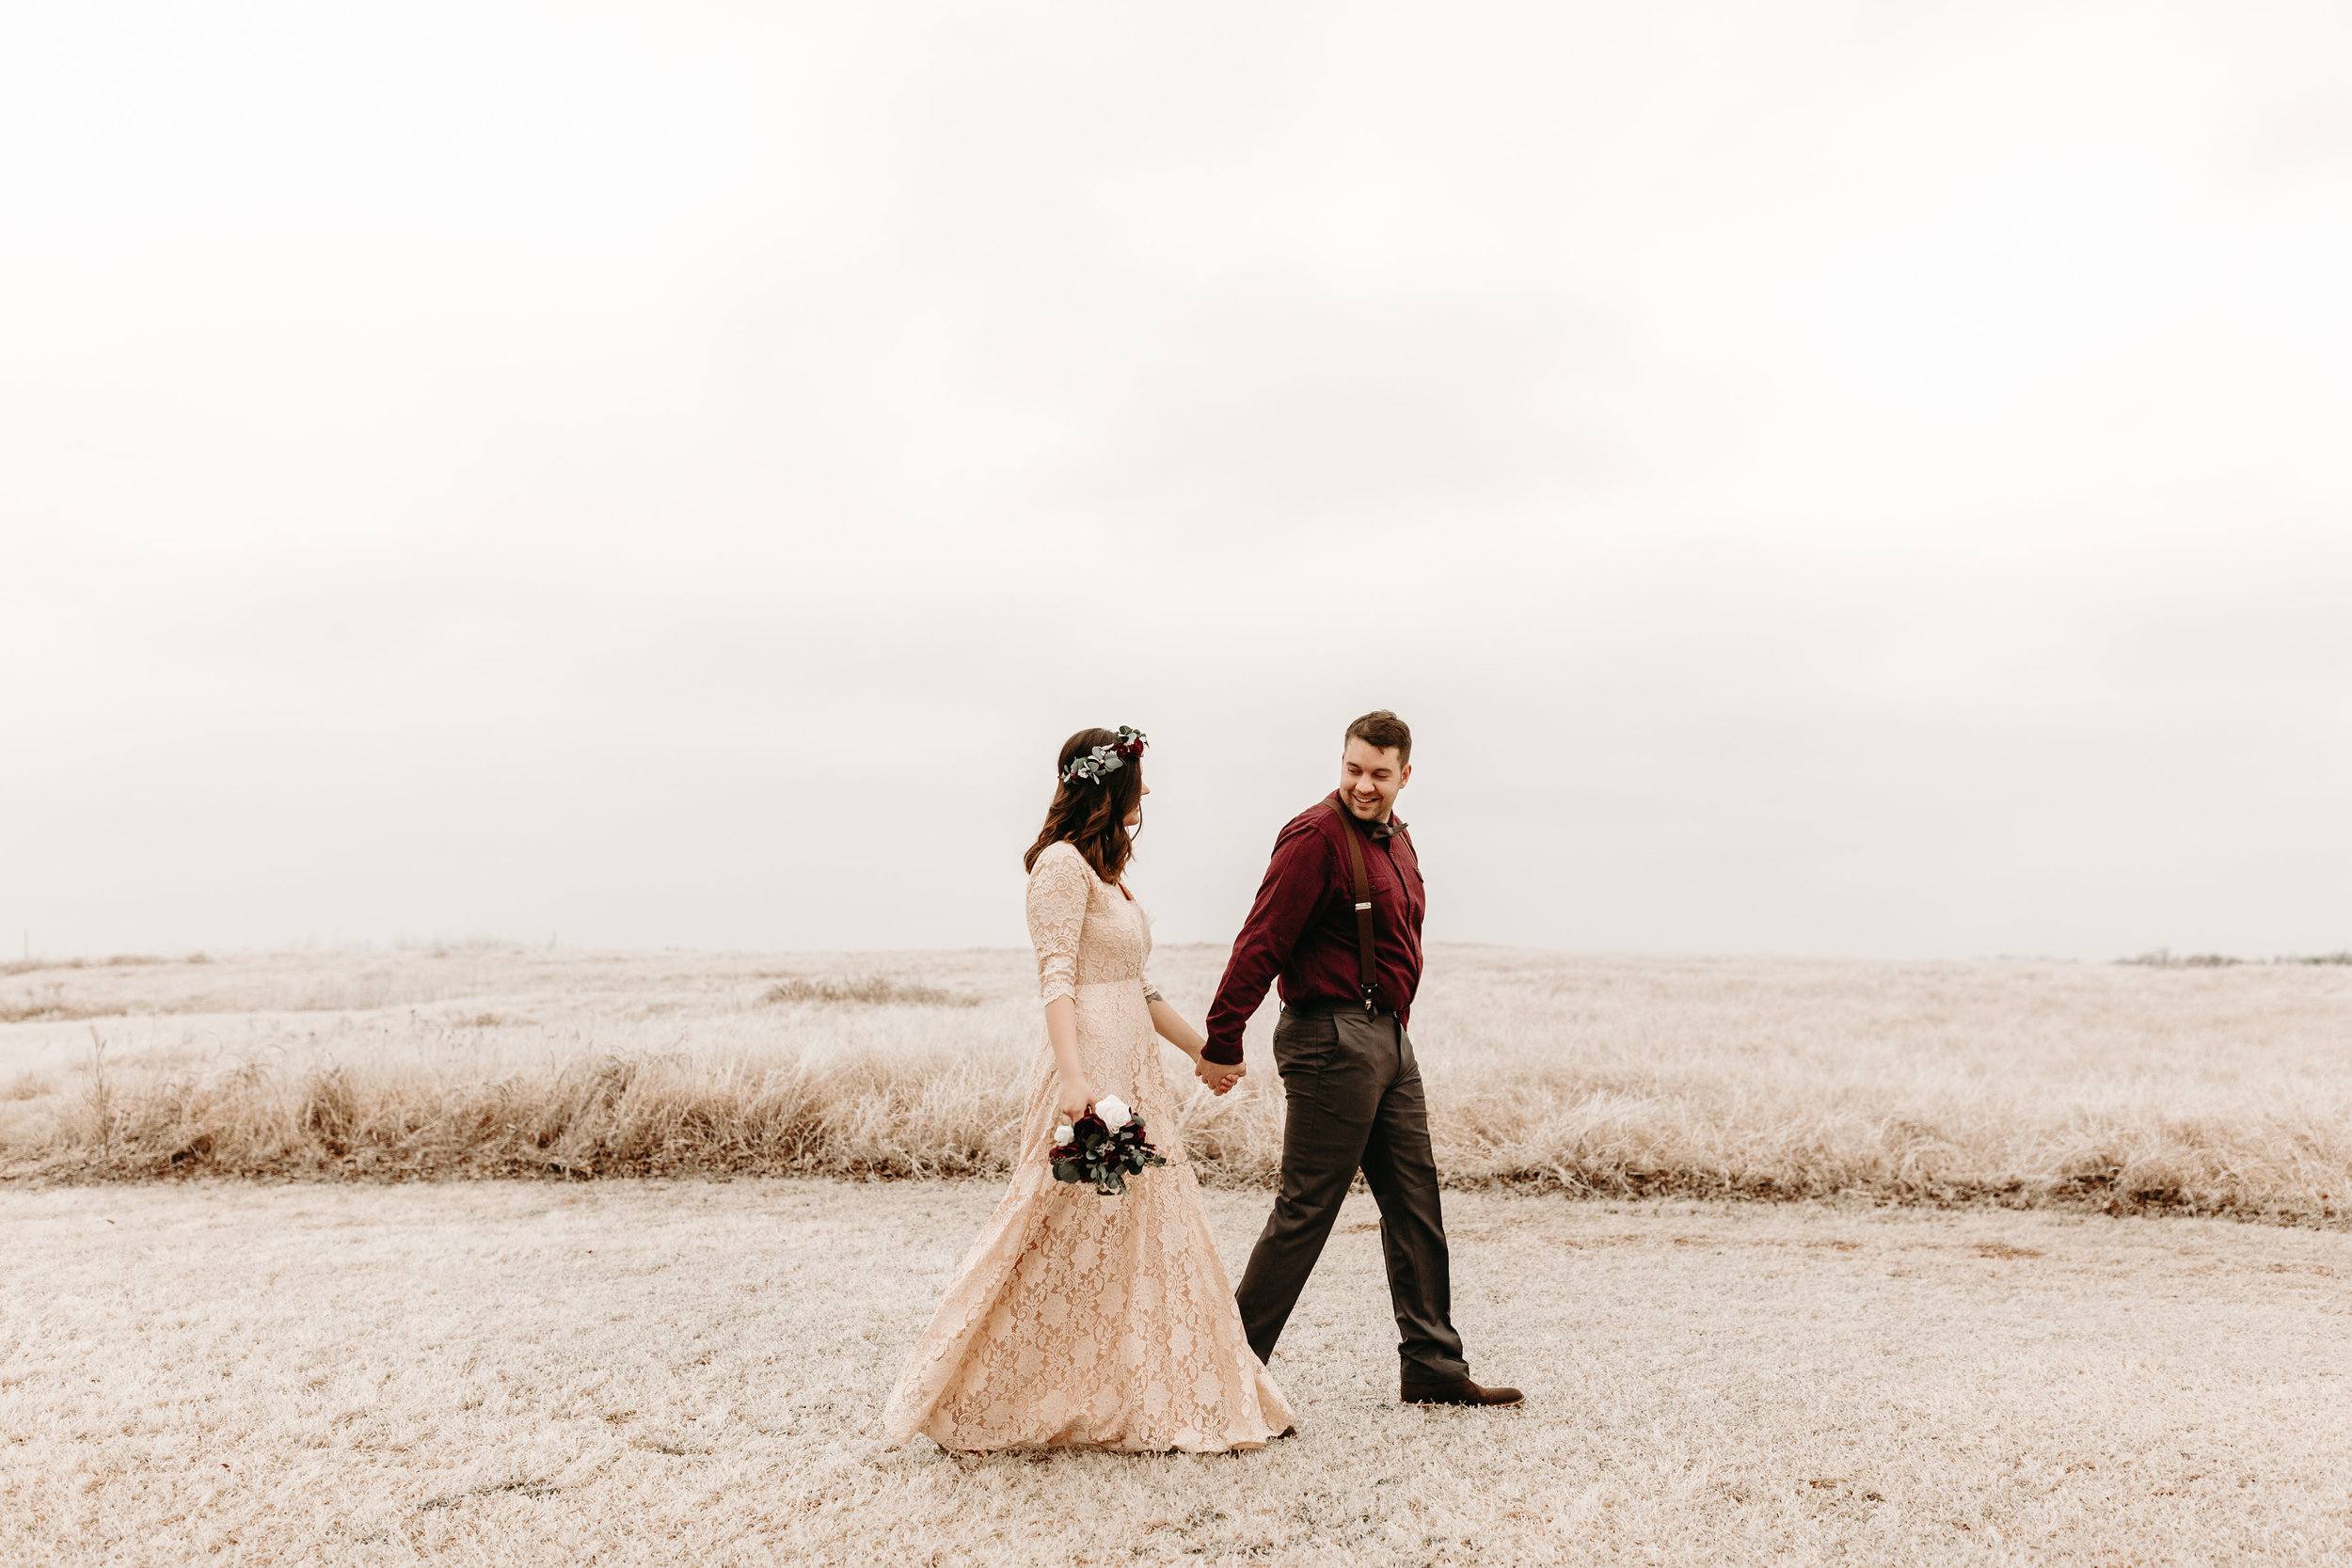 """- """"Breanna is the absolute best. Our wedding day was captured beautifully. We had several changes come up last minute, and she never skipped a beat. Cannot recommend this lovely woman enough!"""""""